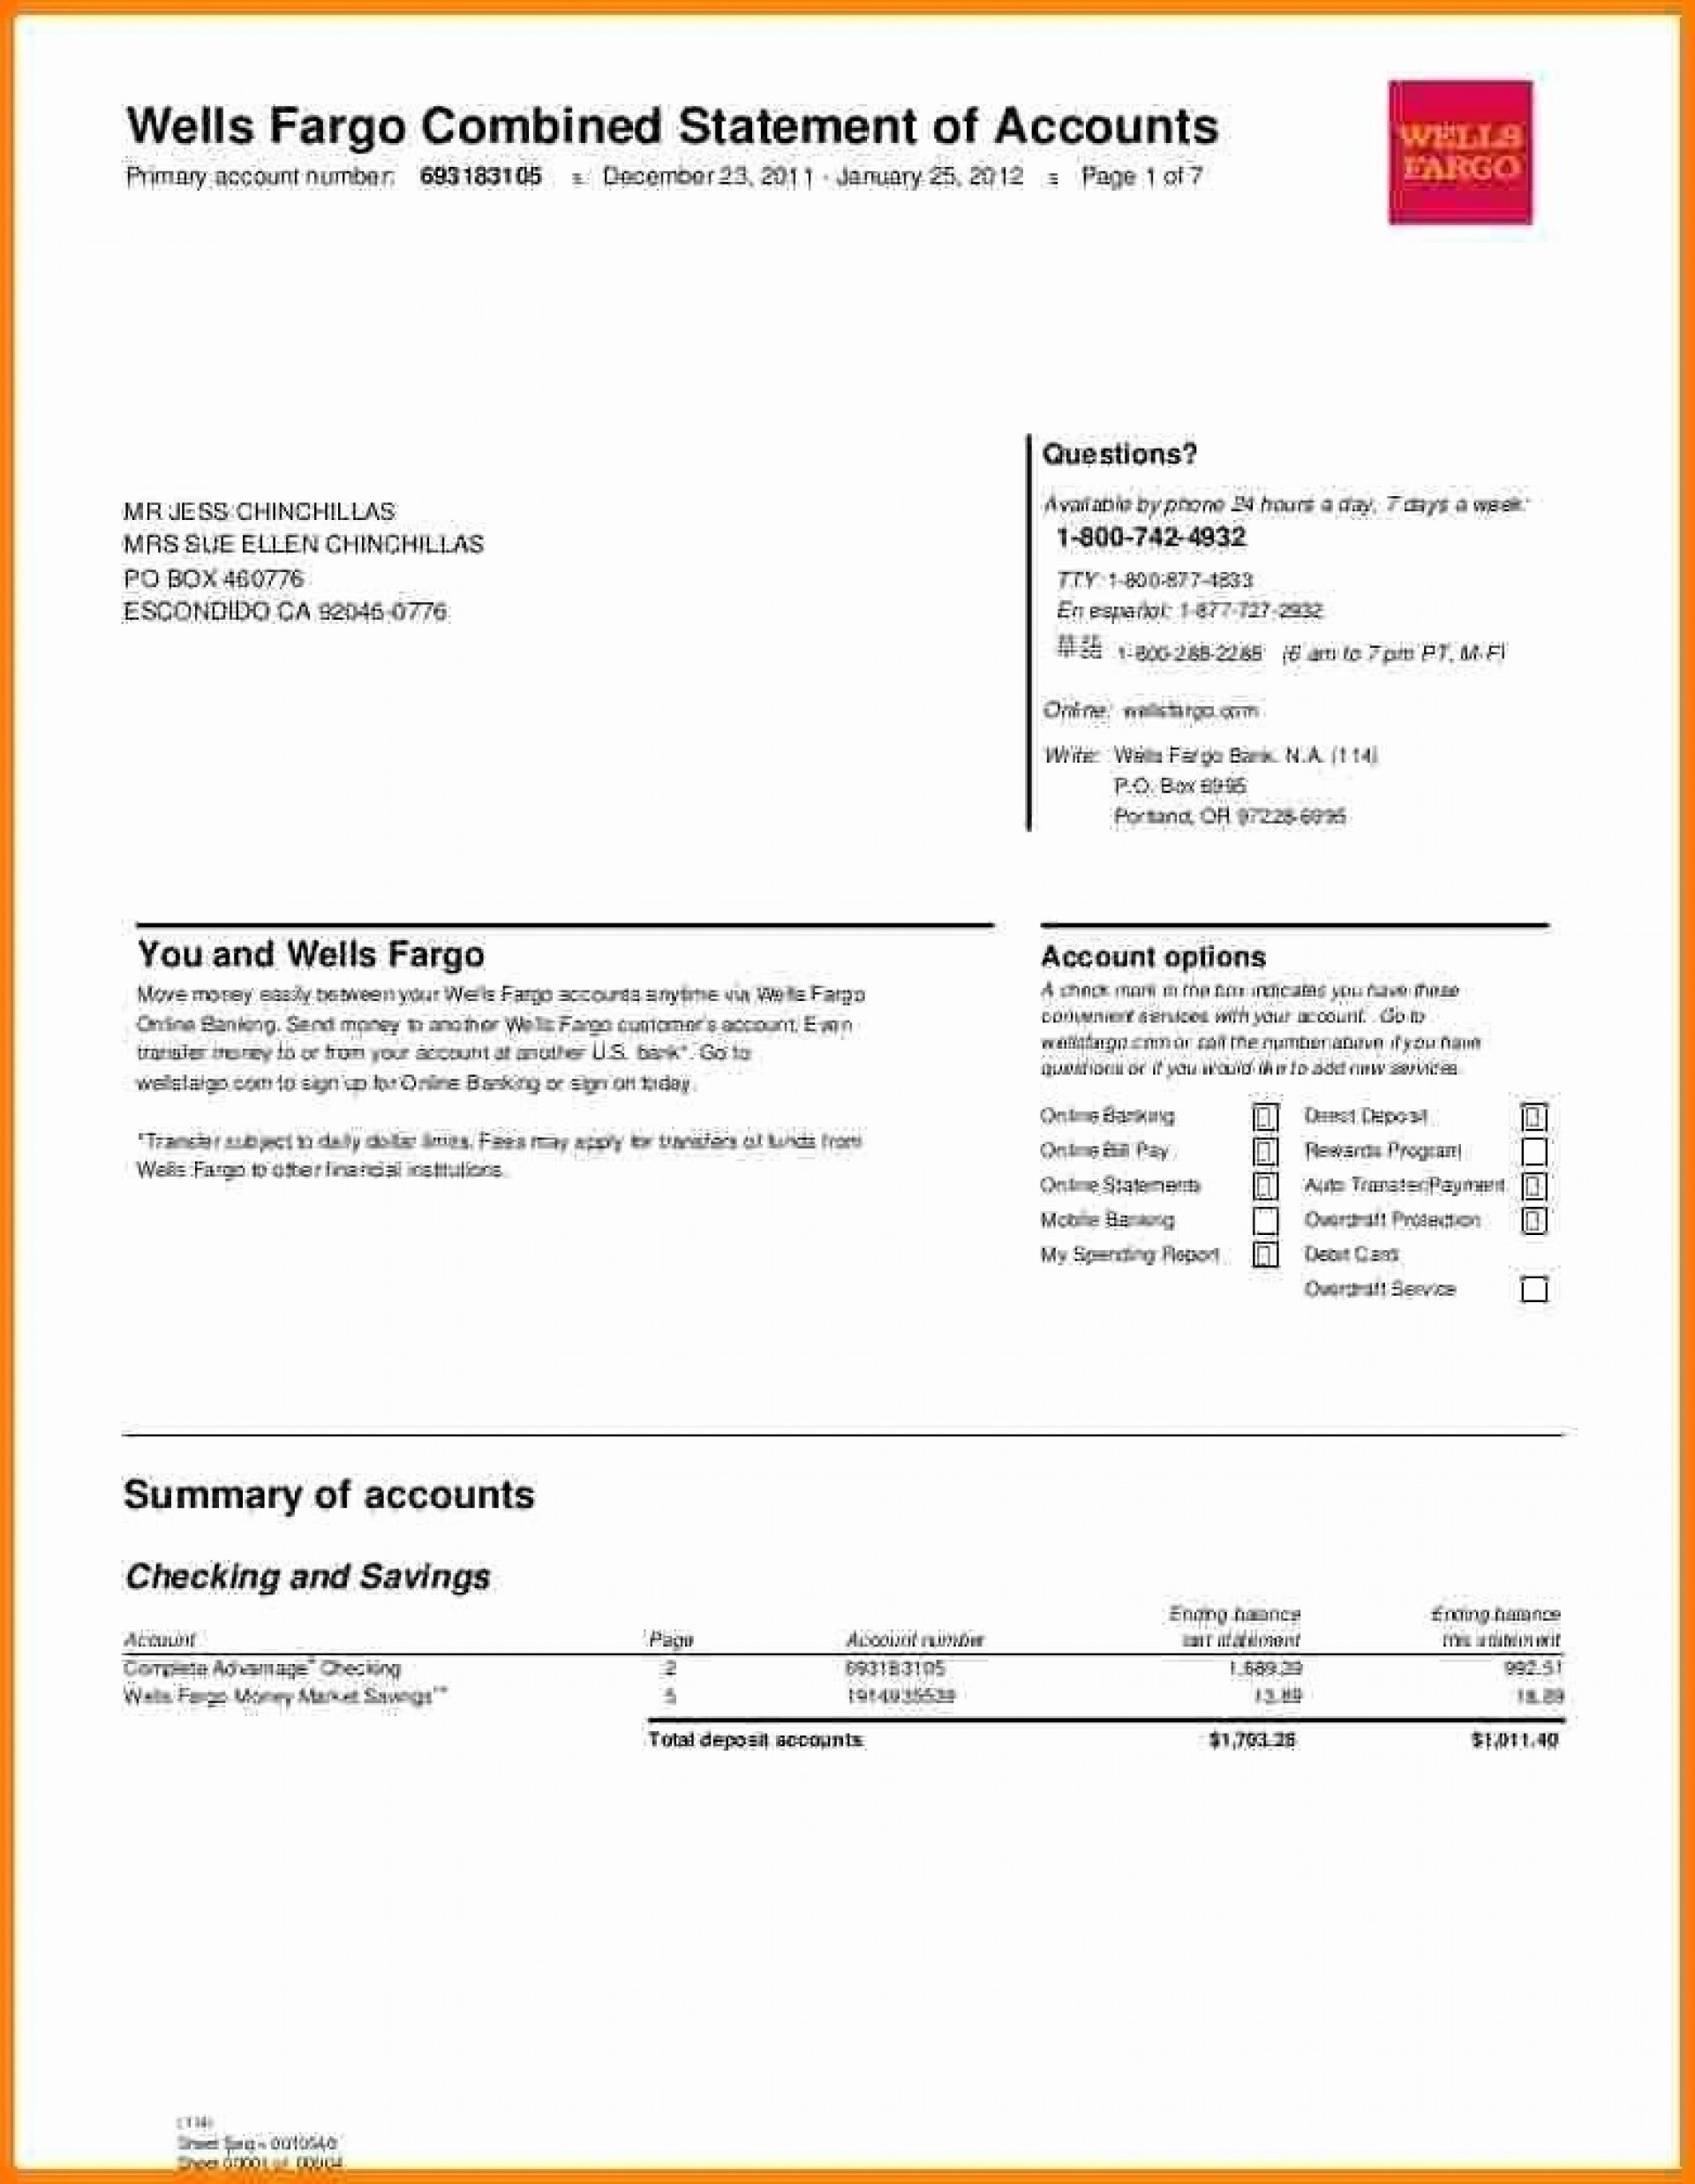 008 Surprising Well Fargo Bank Statement Template High Definition  Fillable Editable1920